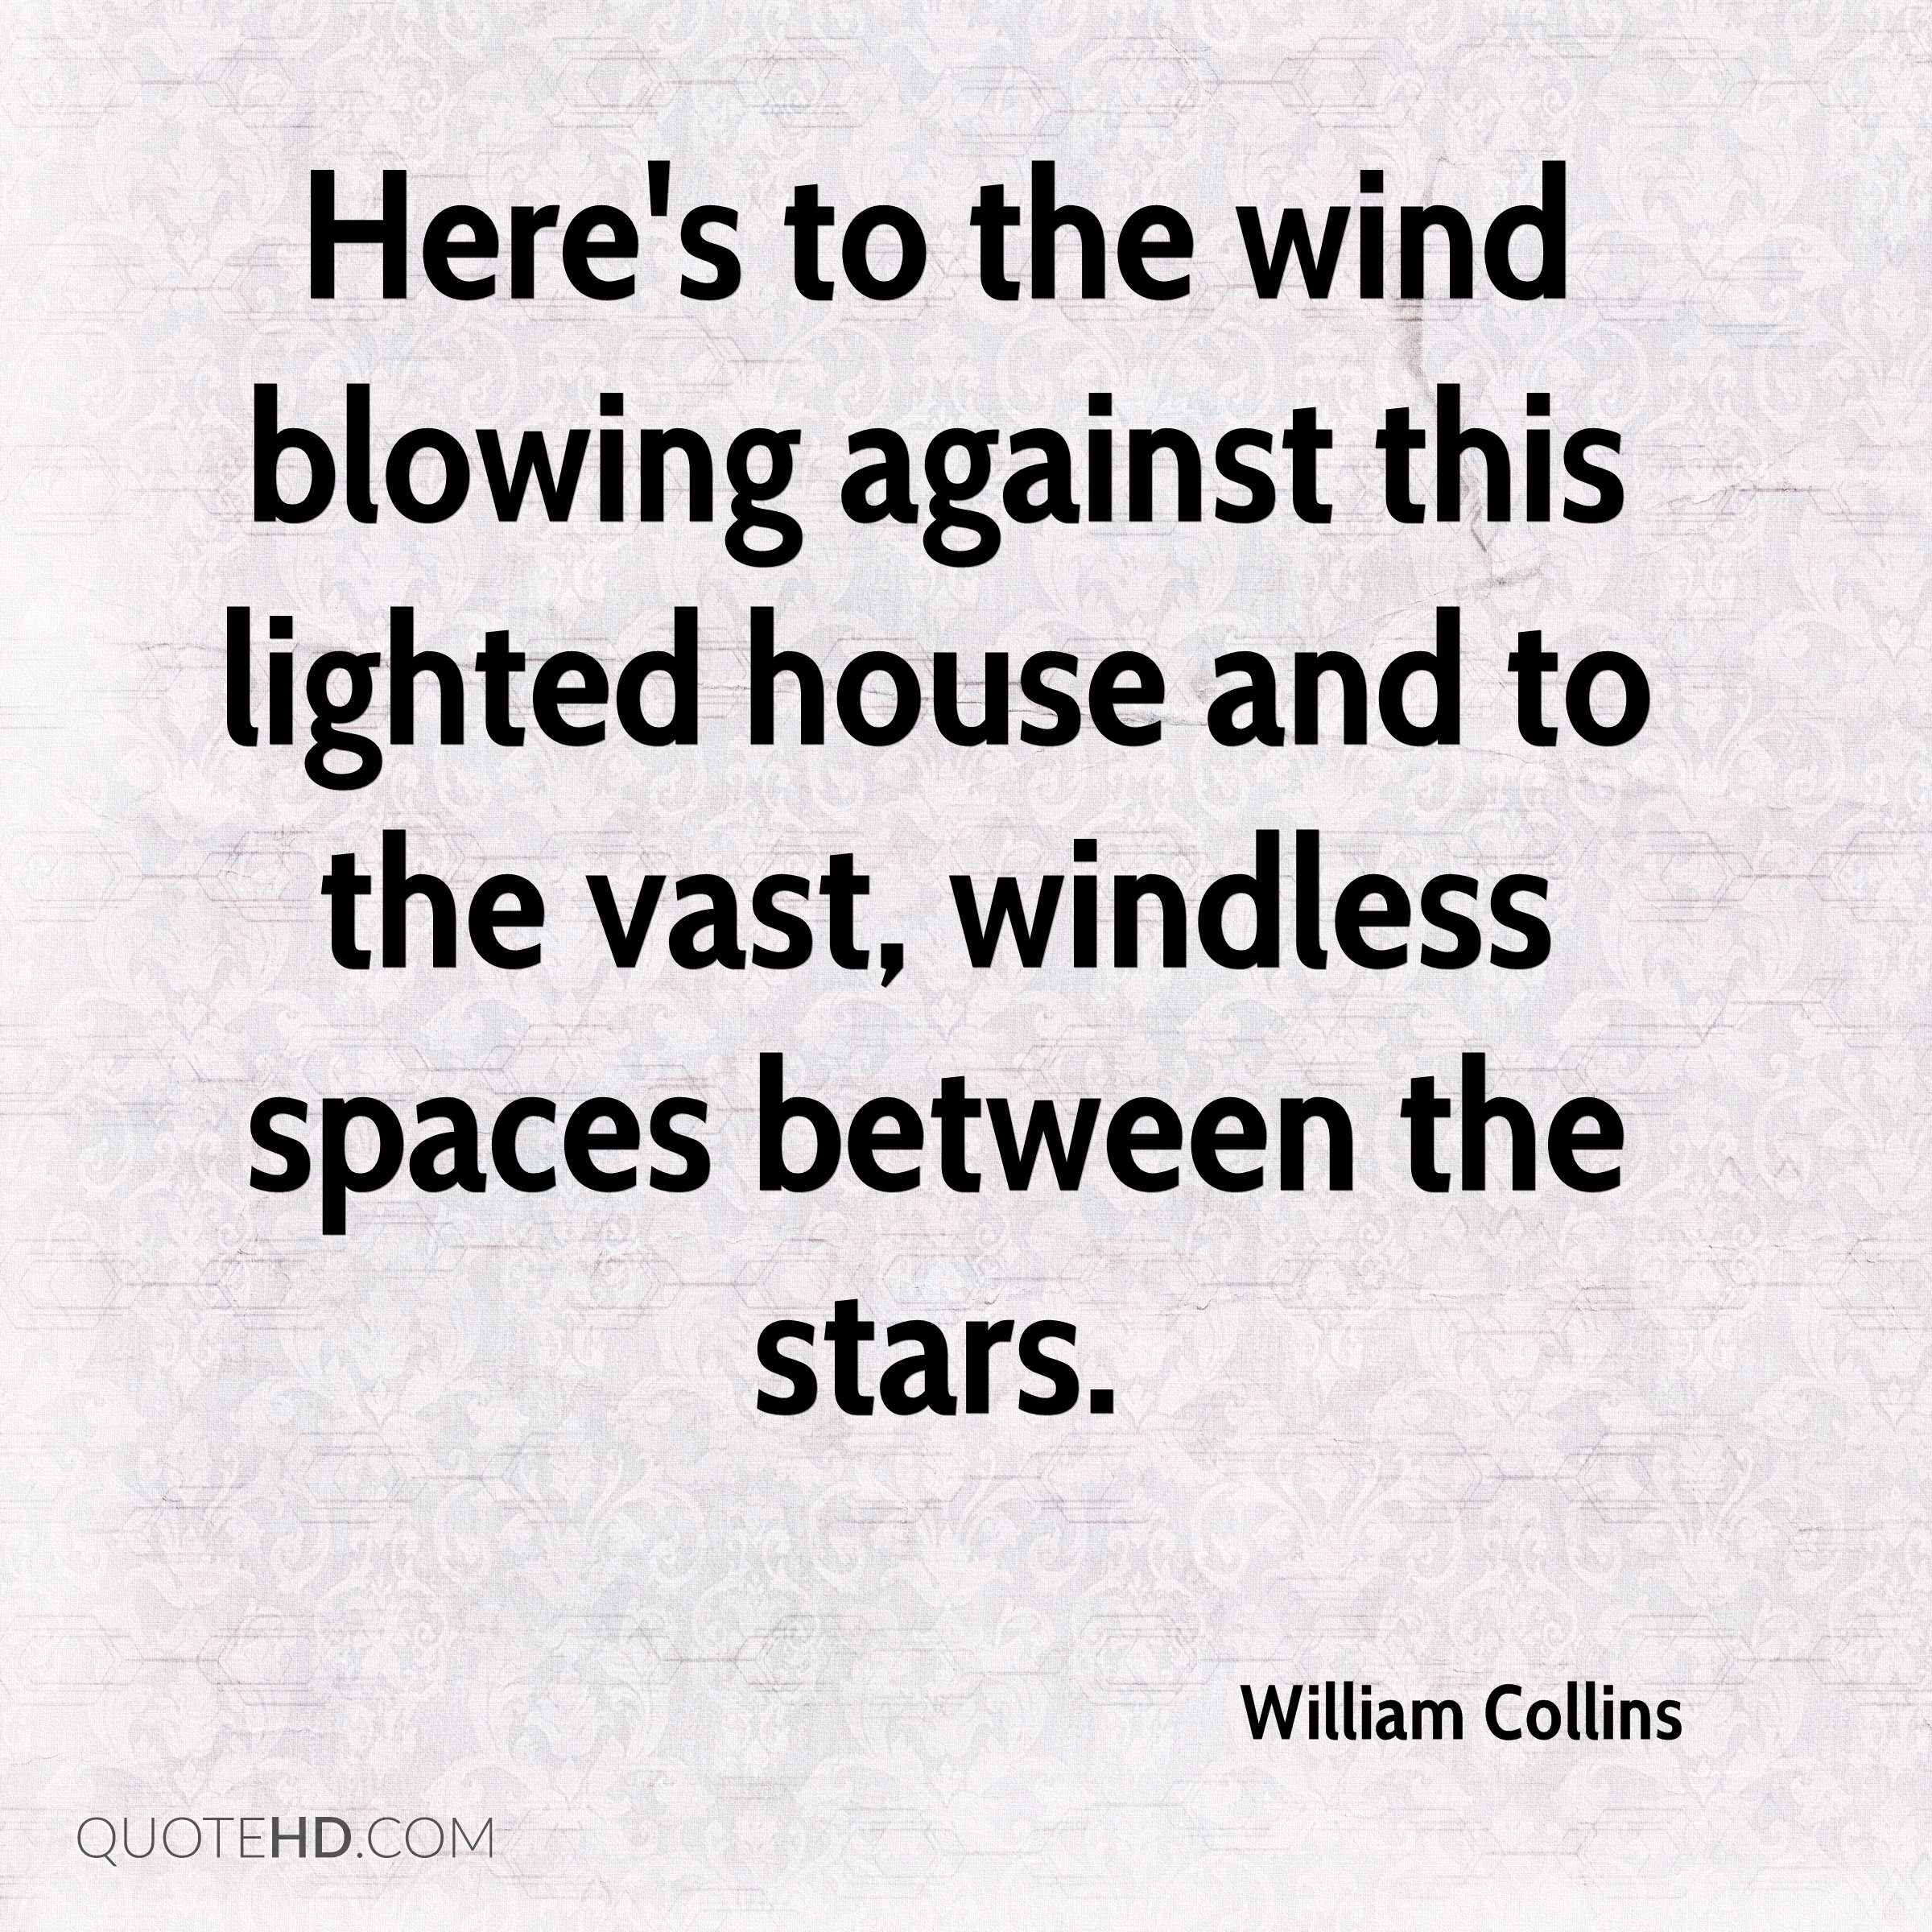 Here's to the wind blowing against this lighted house and to the vast, windless spaces between the stars.